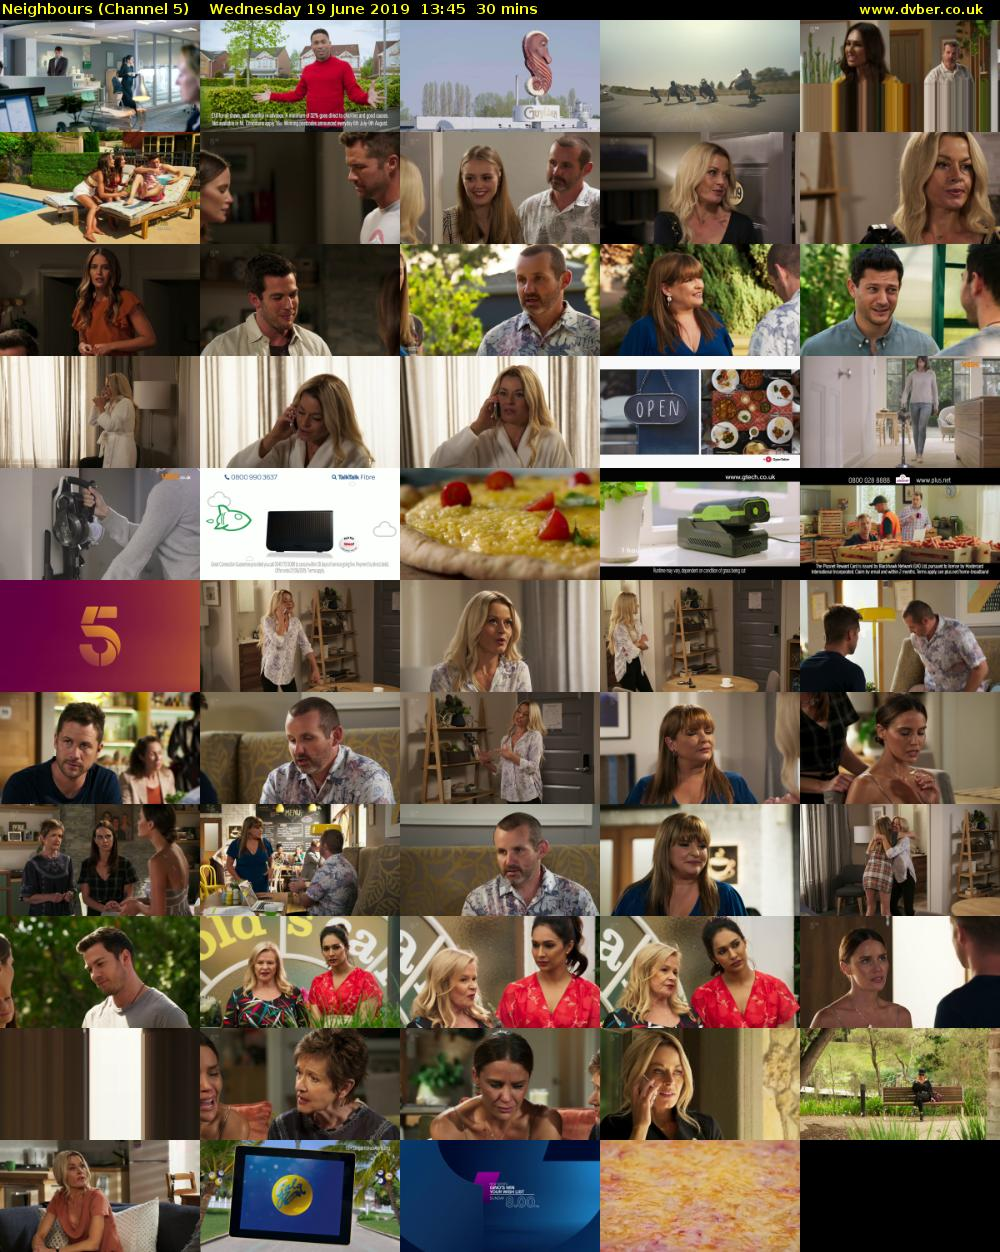 Neighbours (Channel 5) Wednesday 19 June 2019 13:45 - 14:15